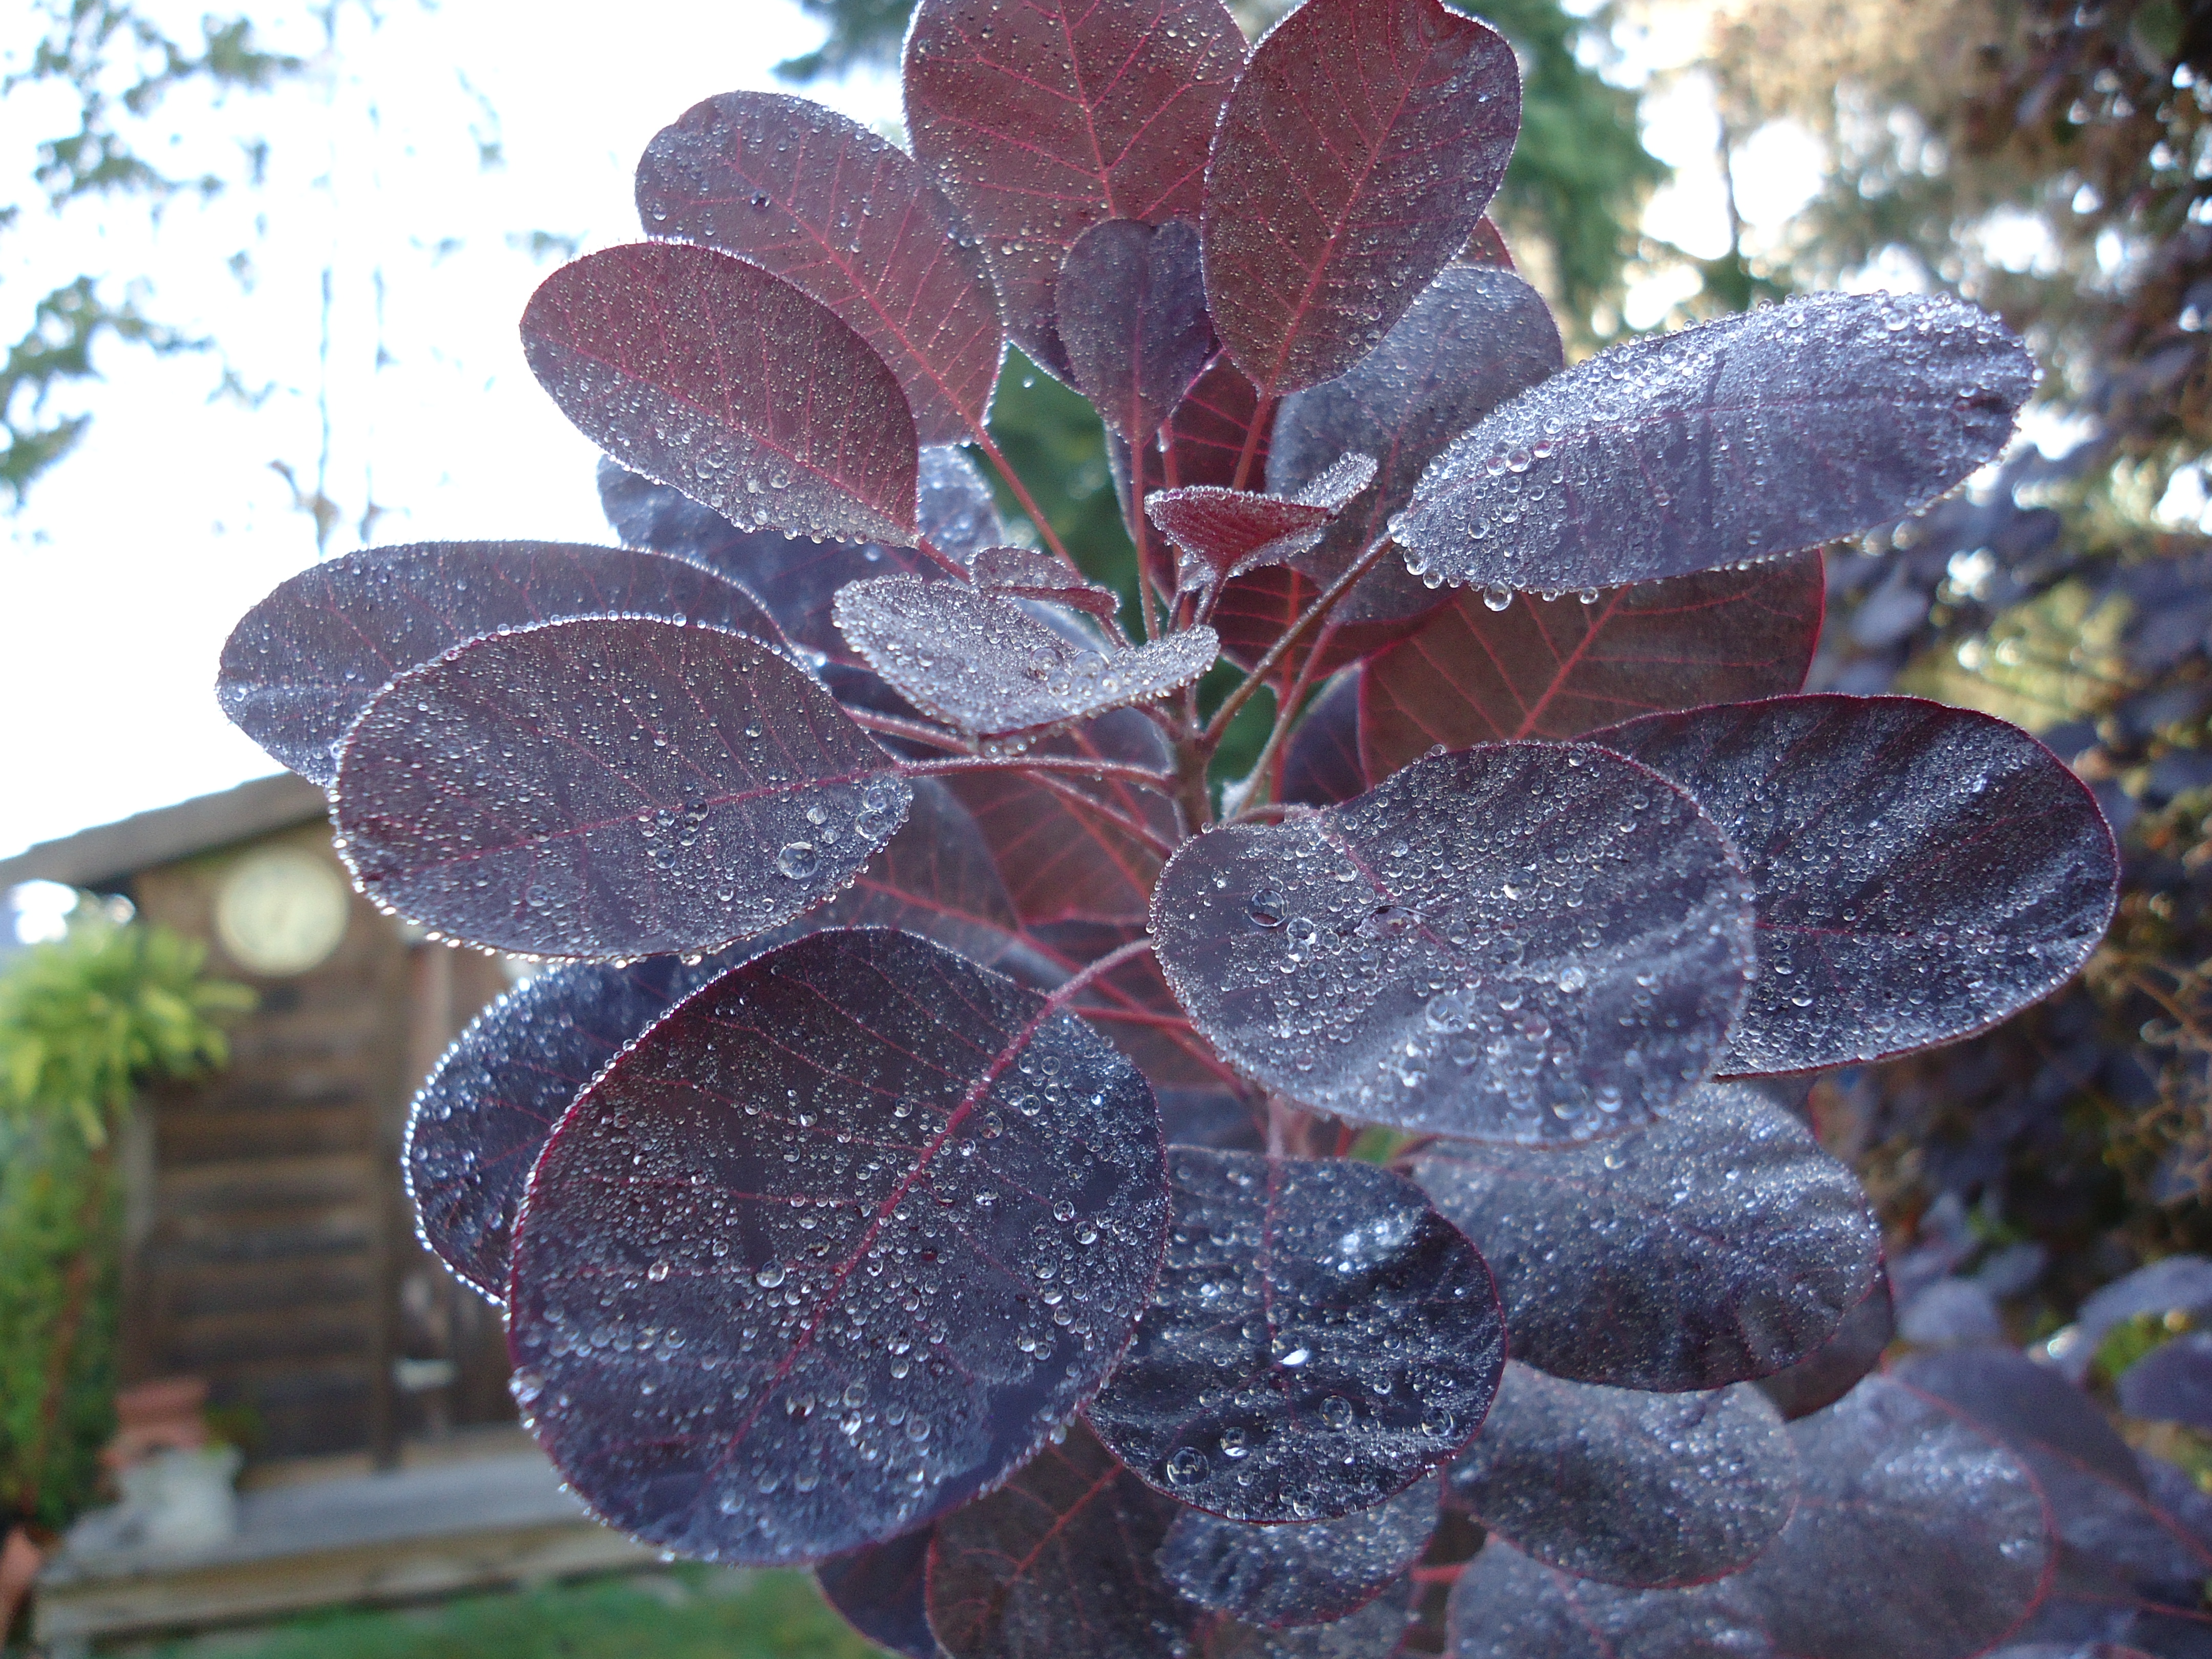 Purple leaf shrub with pink flowers - This Is Cotinus Coggygria Or Smoke Bush It S A Shrub But Can Get To Twenty Feet Unless Pruned Back A Few Feet Each Year I Love The Deep Purple Leaves On